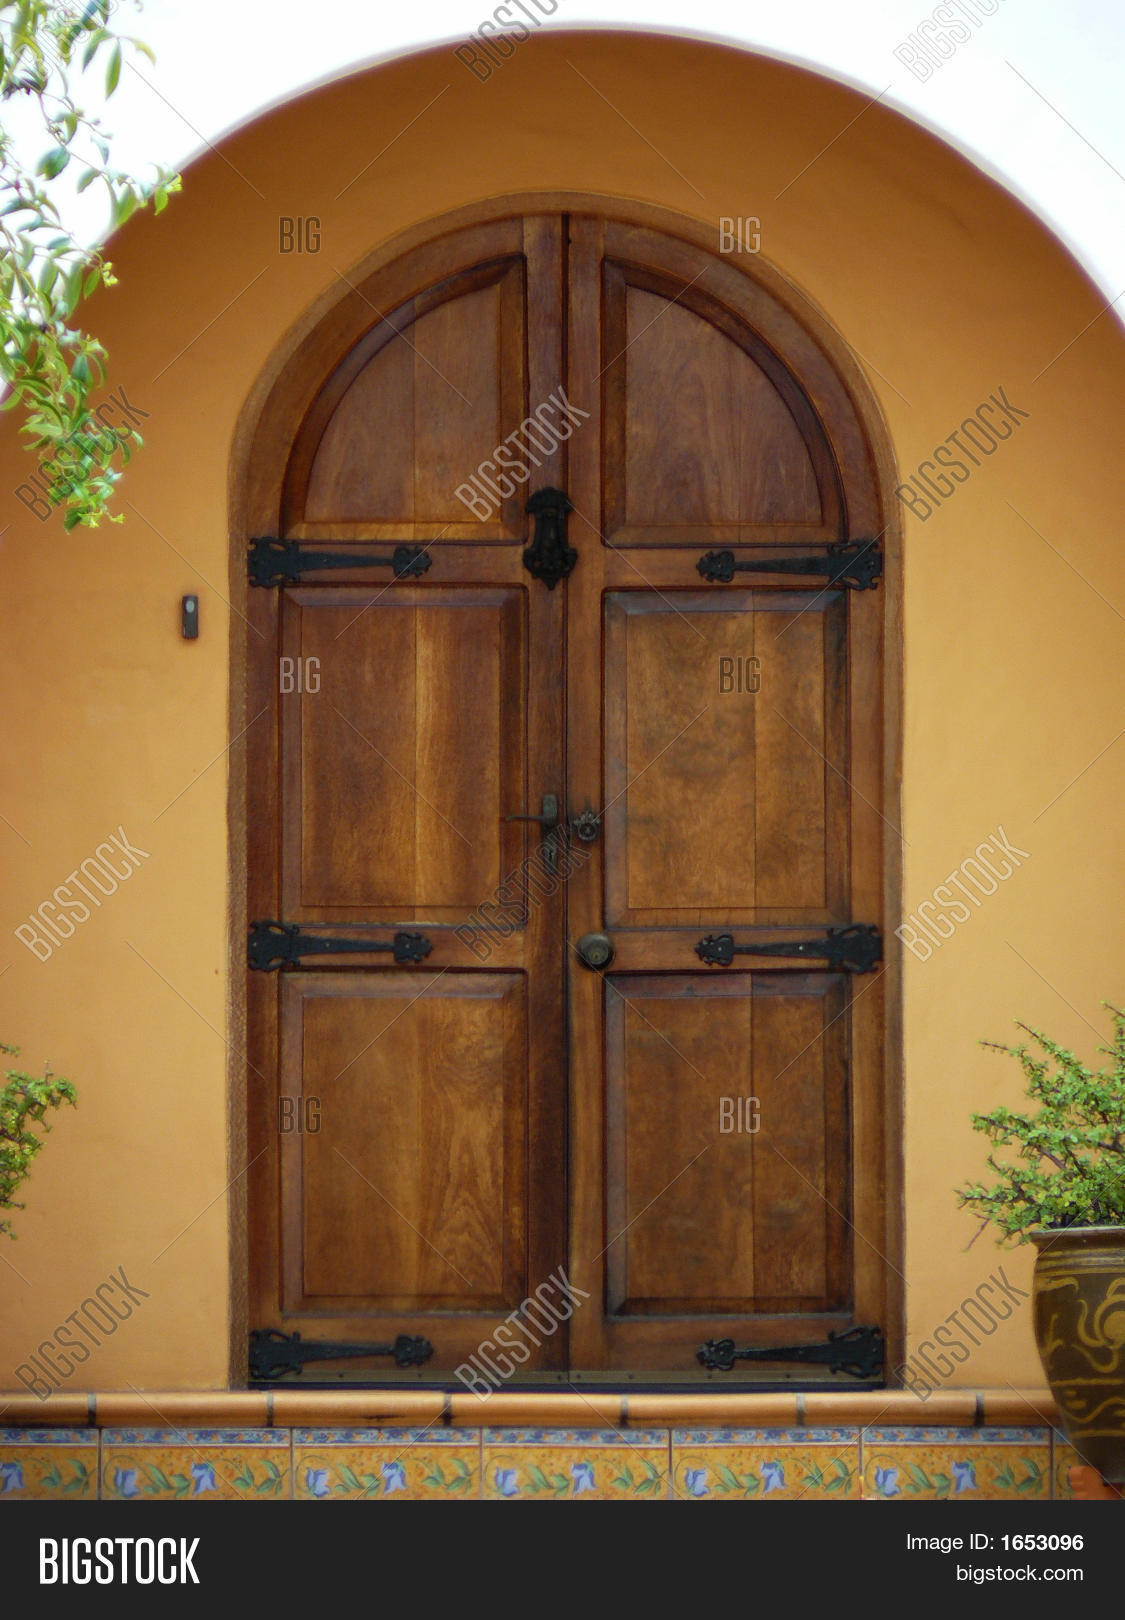 1620 #6E4223 Front Door Arched Wooden Stock Photo & Stock Images Bigstock image Arched Wood Entry Doors 40831125